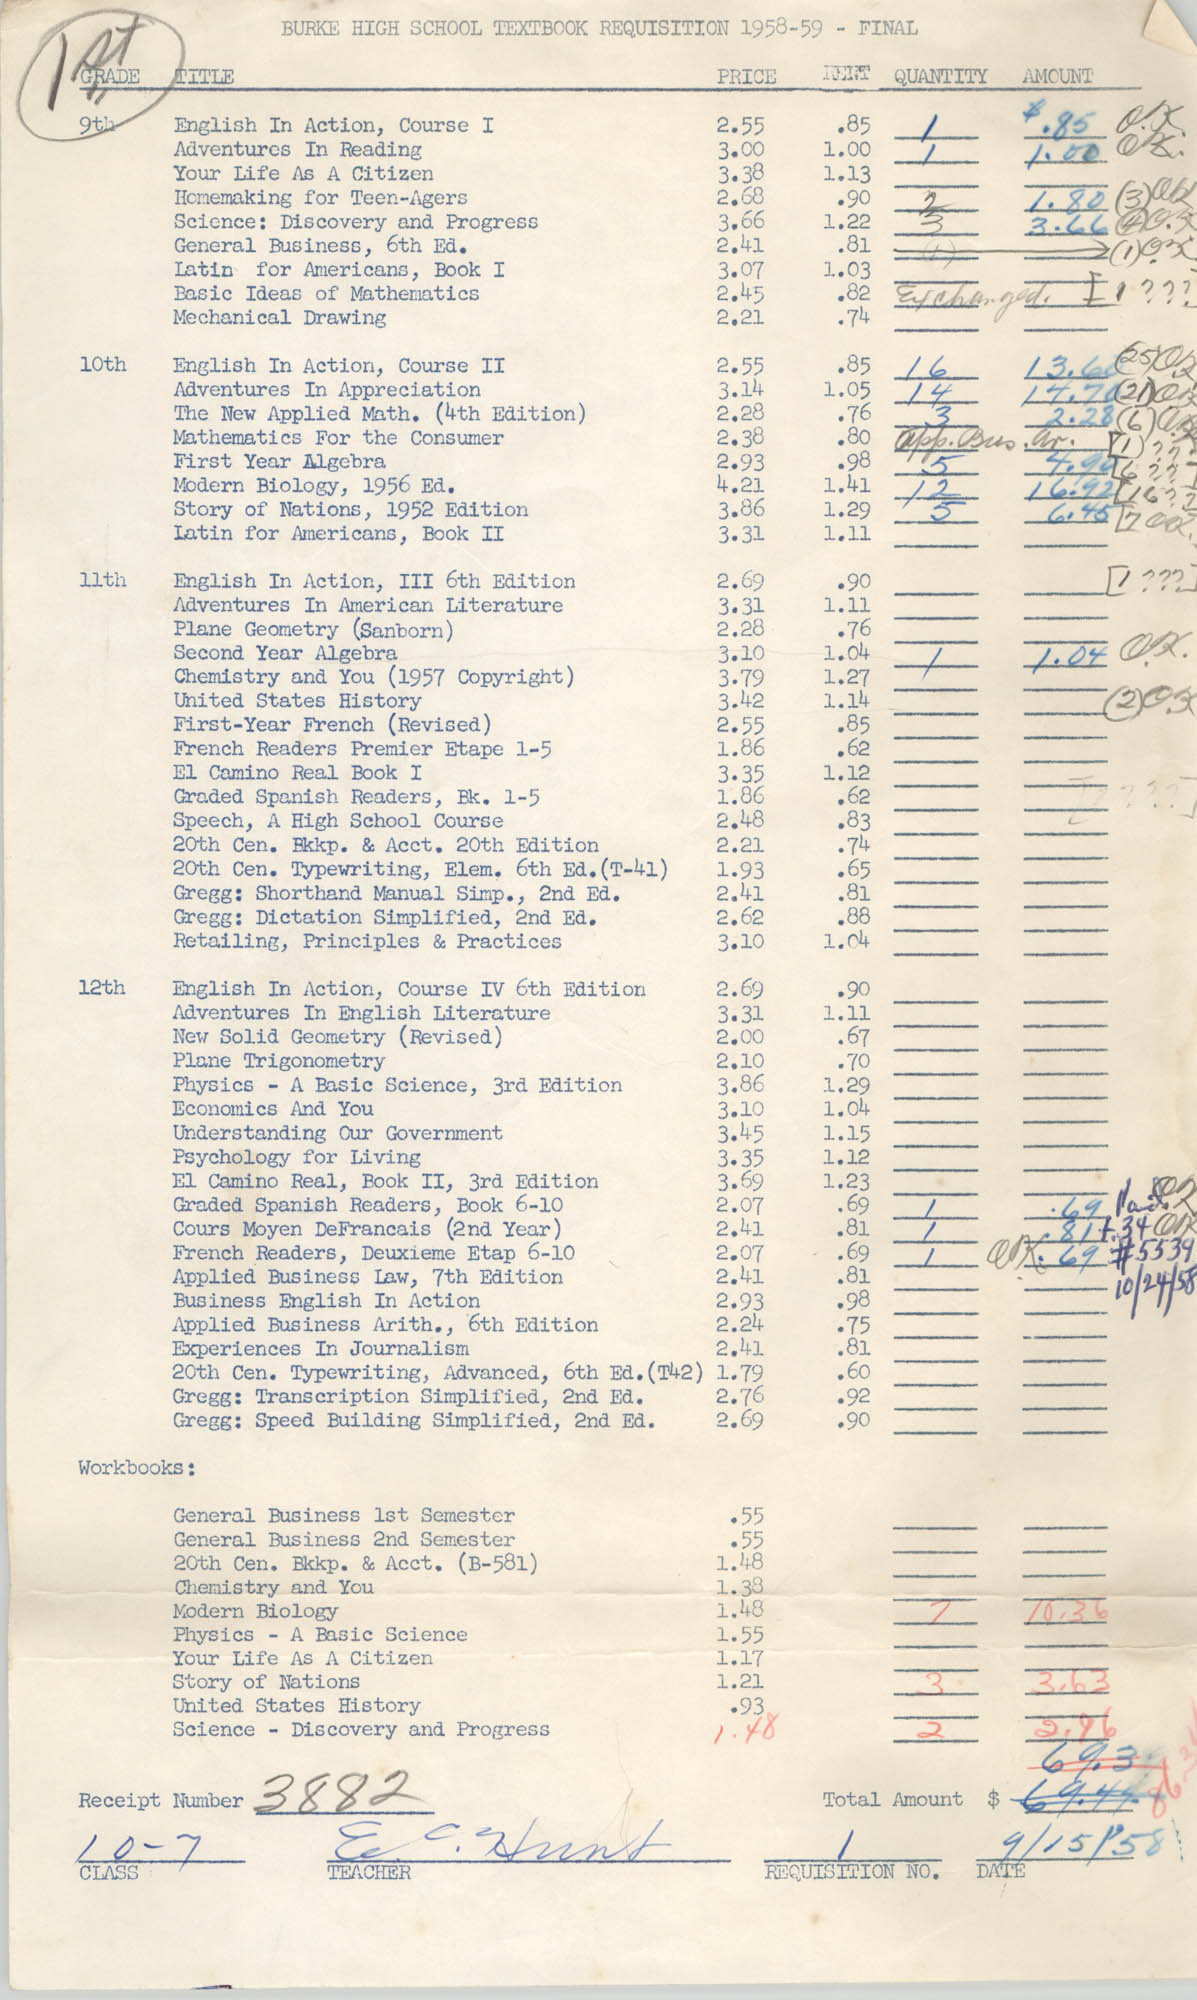 Burke High School Textbook Requisition 1958-59